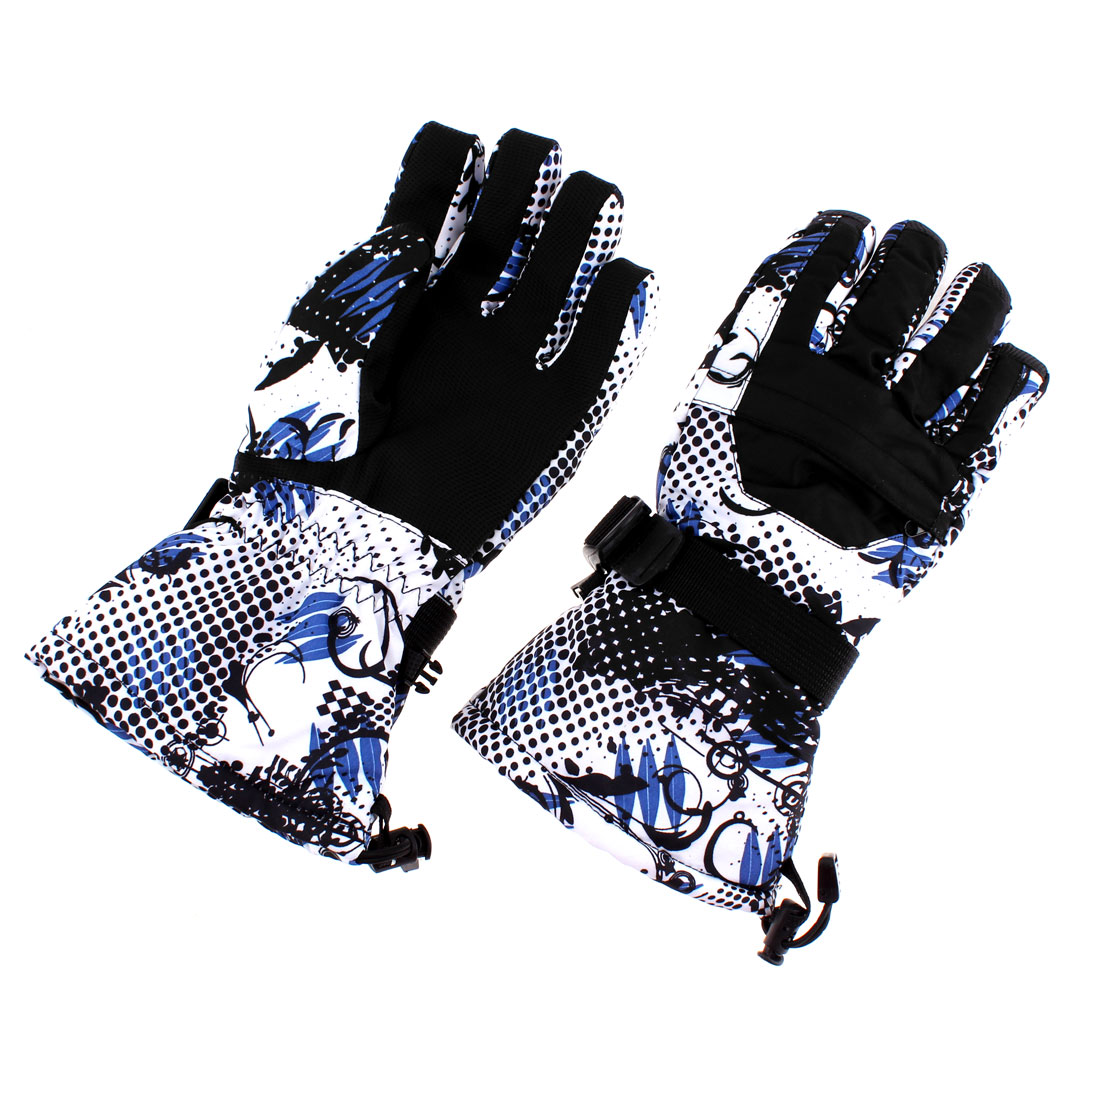 Ski Skiing Snow Snowboarding Gloves Black M Pair for Women